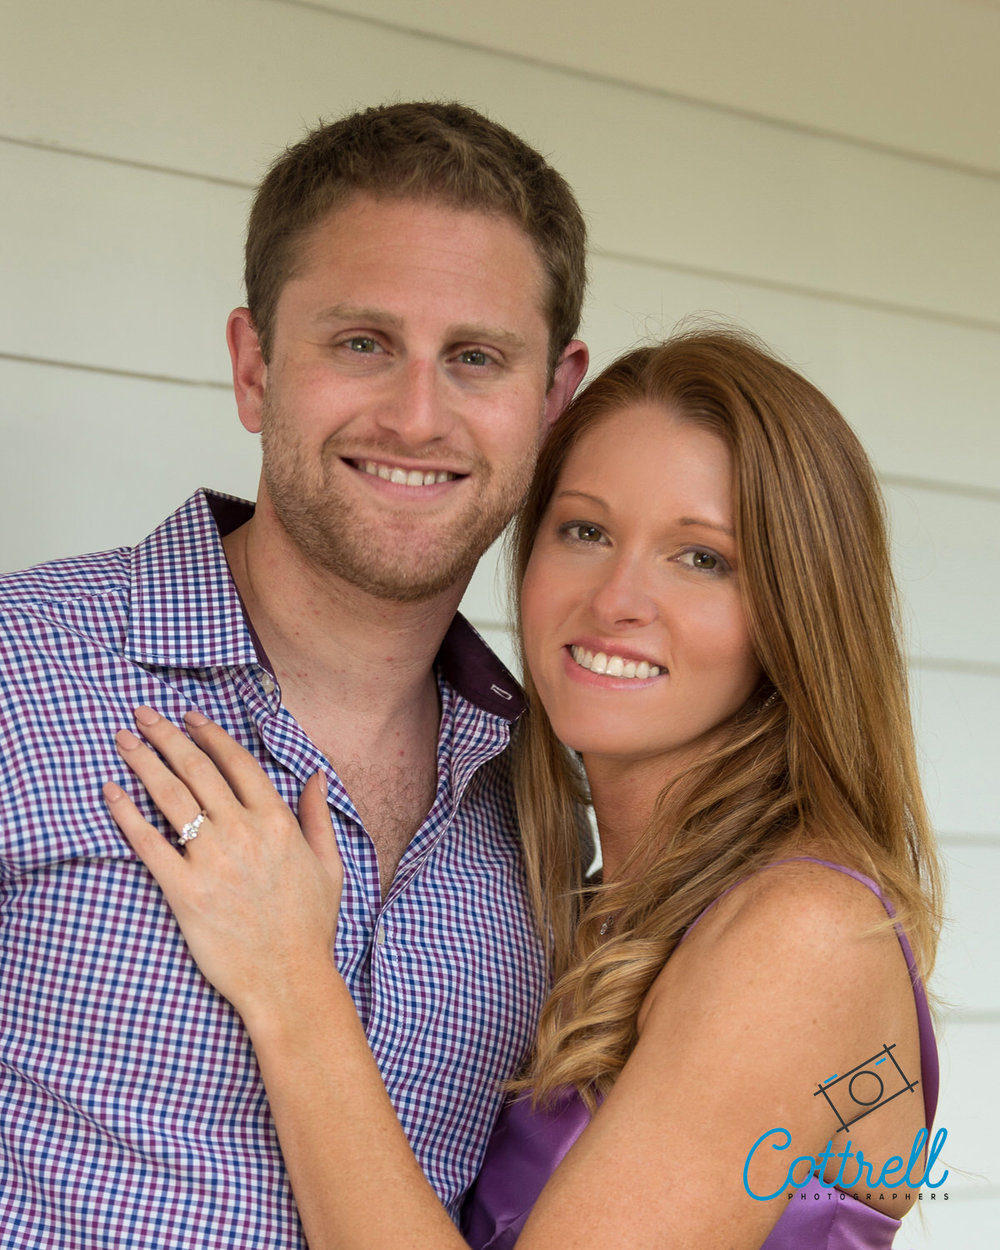 Engagement Photo Session at the Grande in Kennesaw